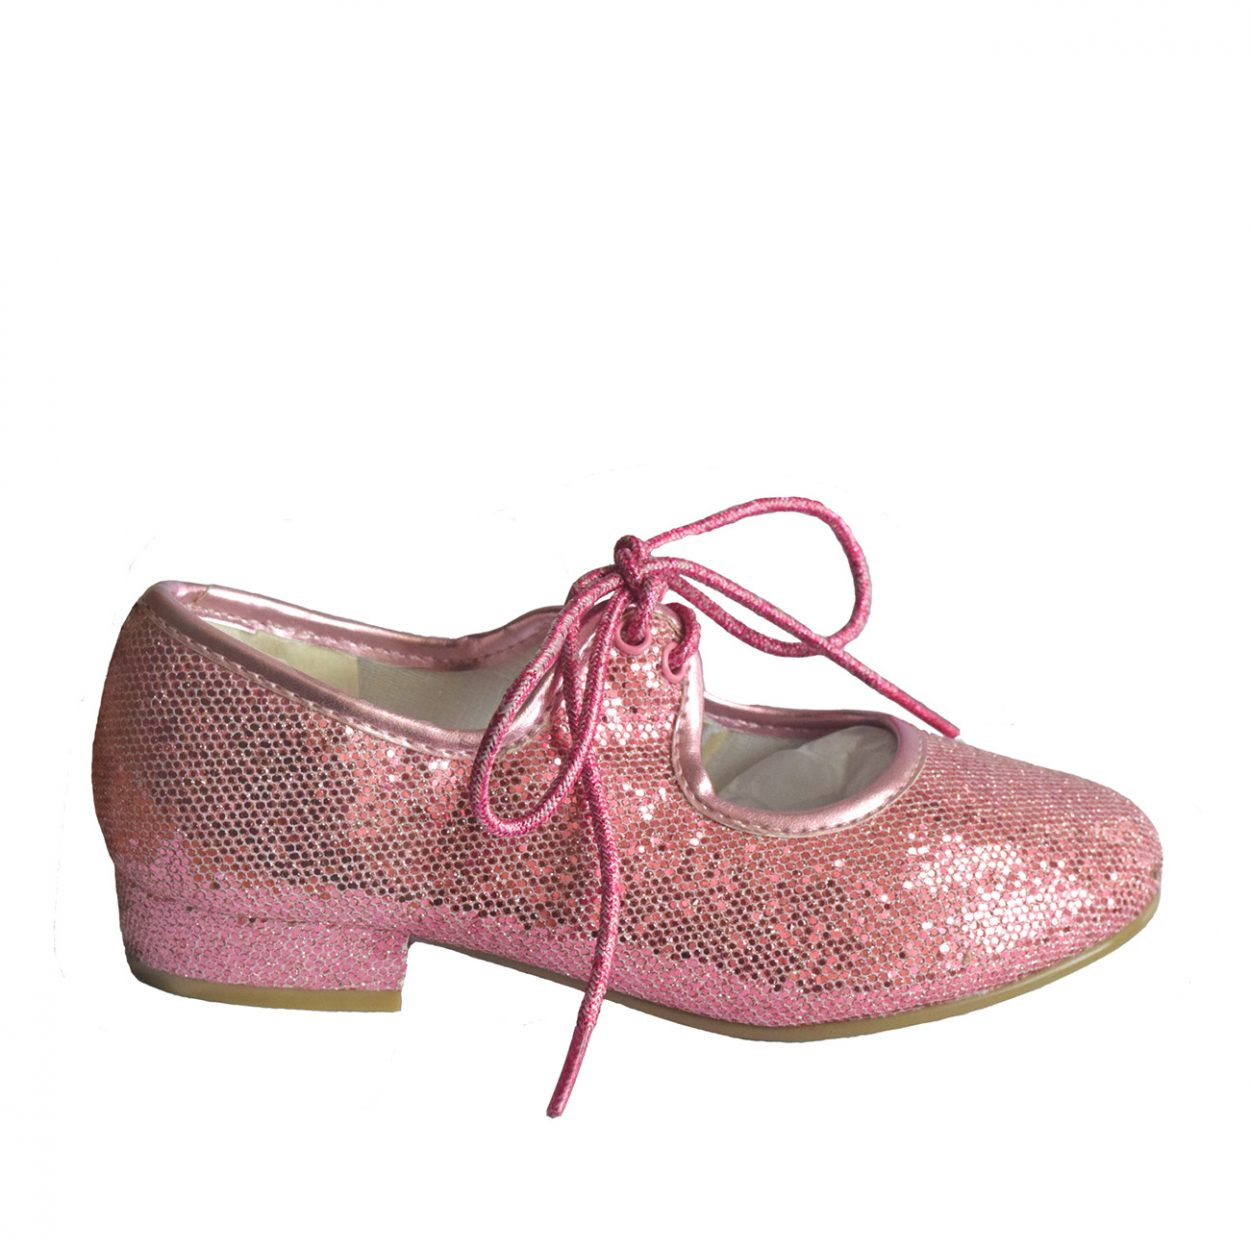 PHT Low Heel Tap Shoes - Pink Glitter Upper Tappers and Pointers